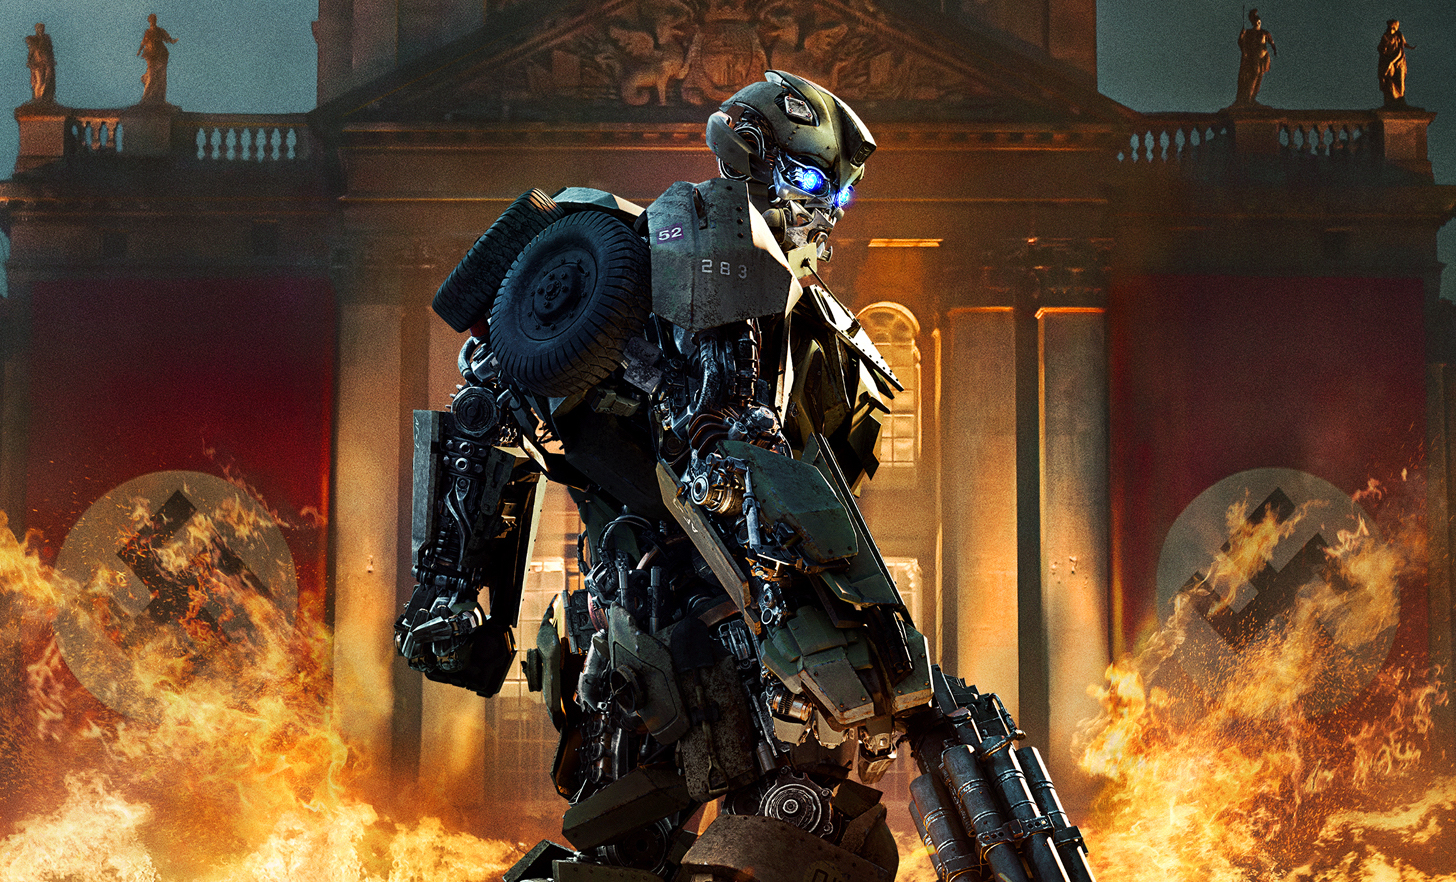 Every bizarre bit of Transformers movie lore that Bumblebee retcons out of existence